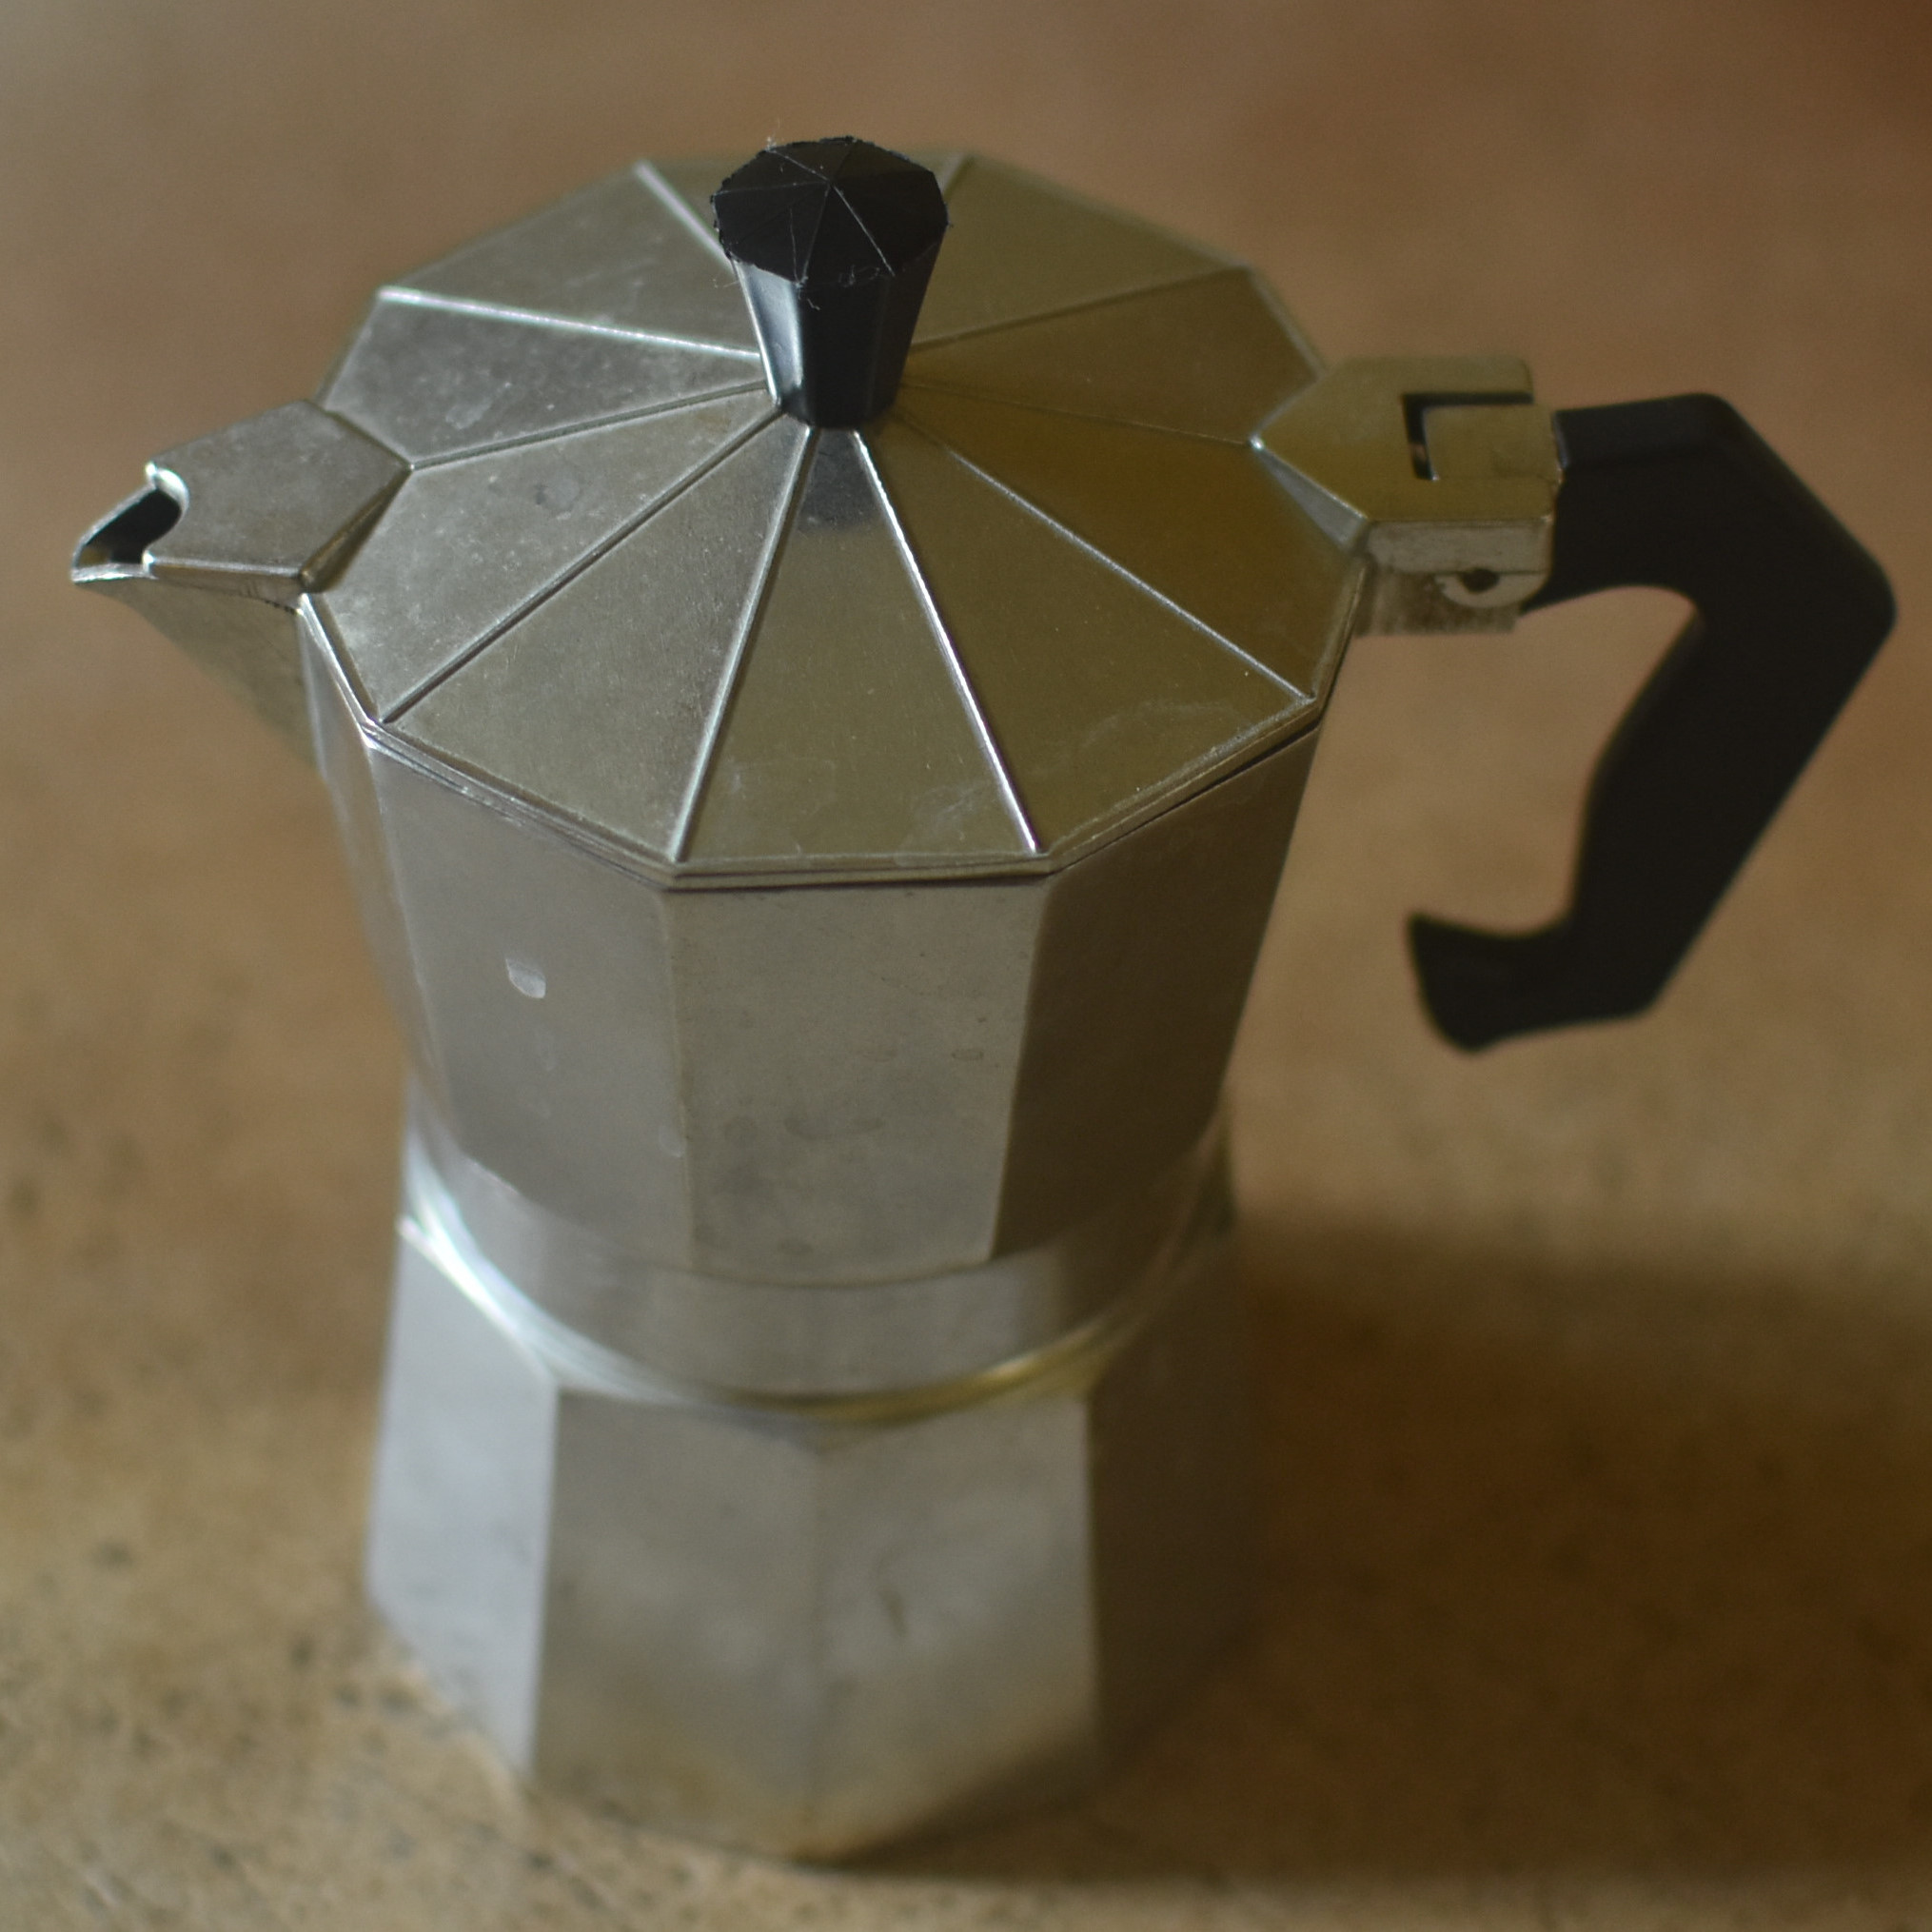 My moka pot, a fairly cheap one that I've had for many a year.